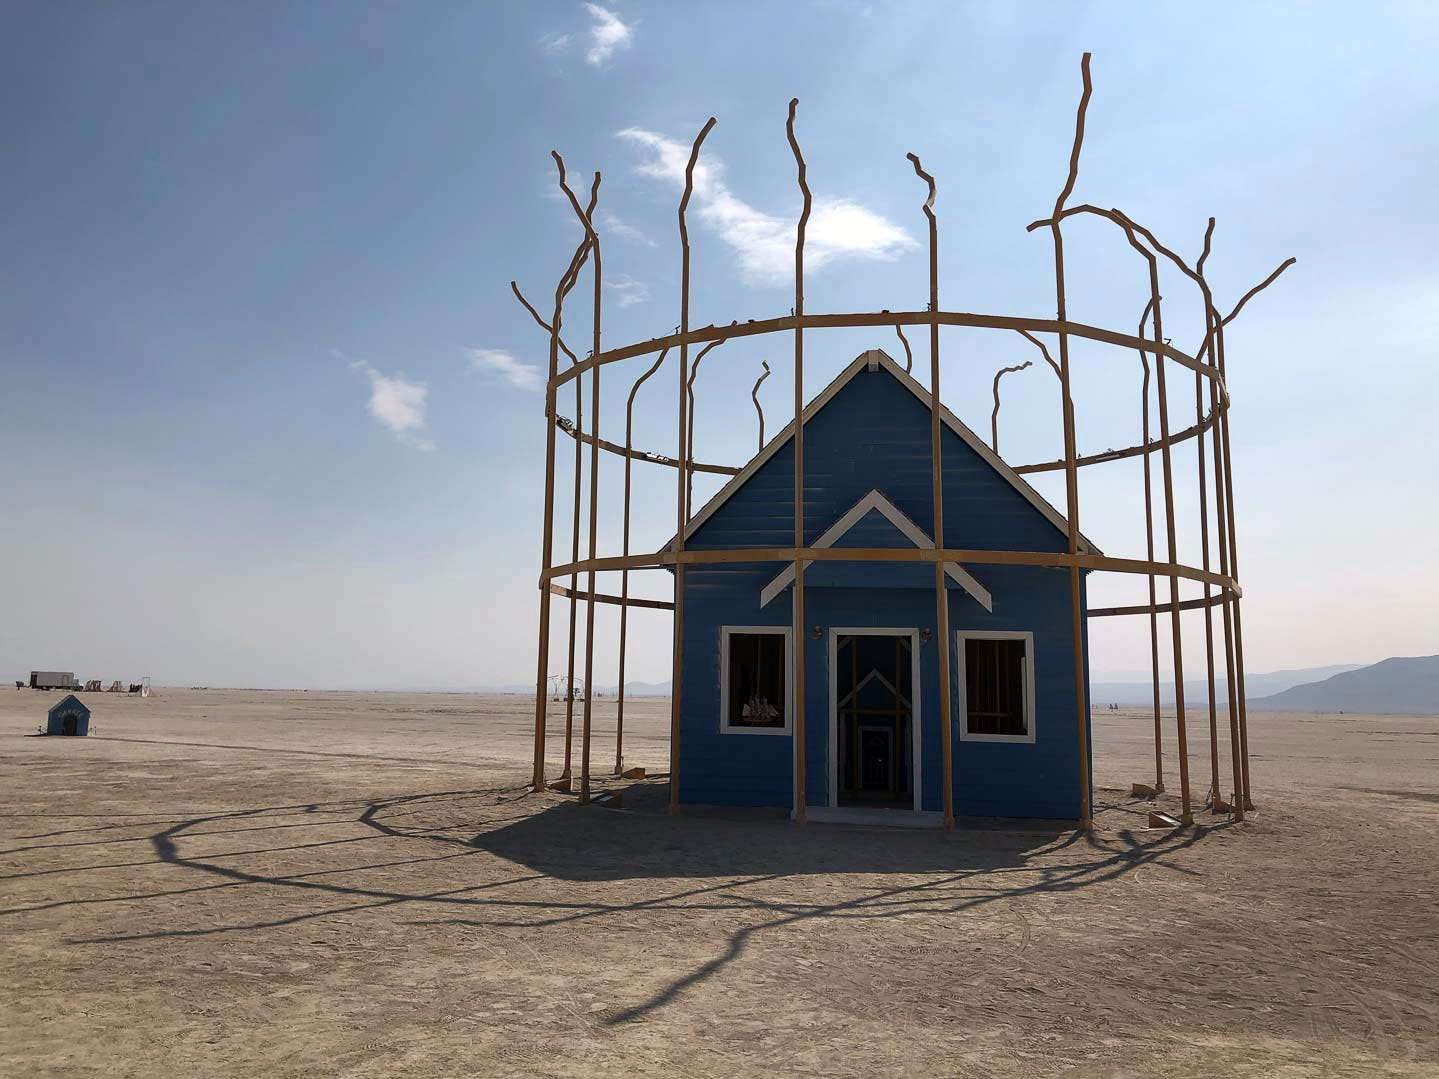 """Singularity"" is a broken bird cage on the playa at Burning Man 2018. It has a house within a house within a house within a house within a house by Rebekah Waites and the Singularity Crew. People can walk inside and interact with the vintage elements, then walk inside the house again and find the same pieces until they can no longer enter the smallest house within."